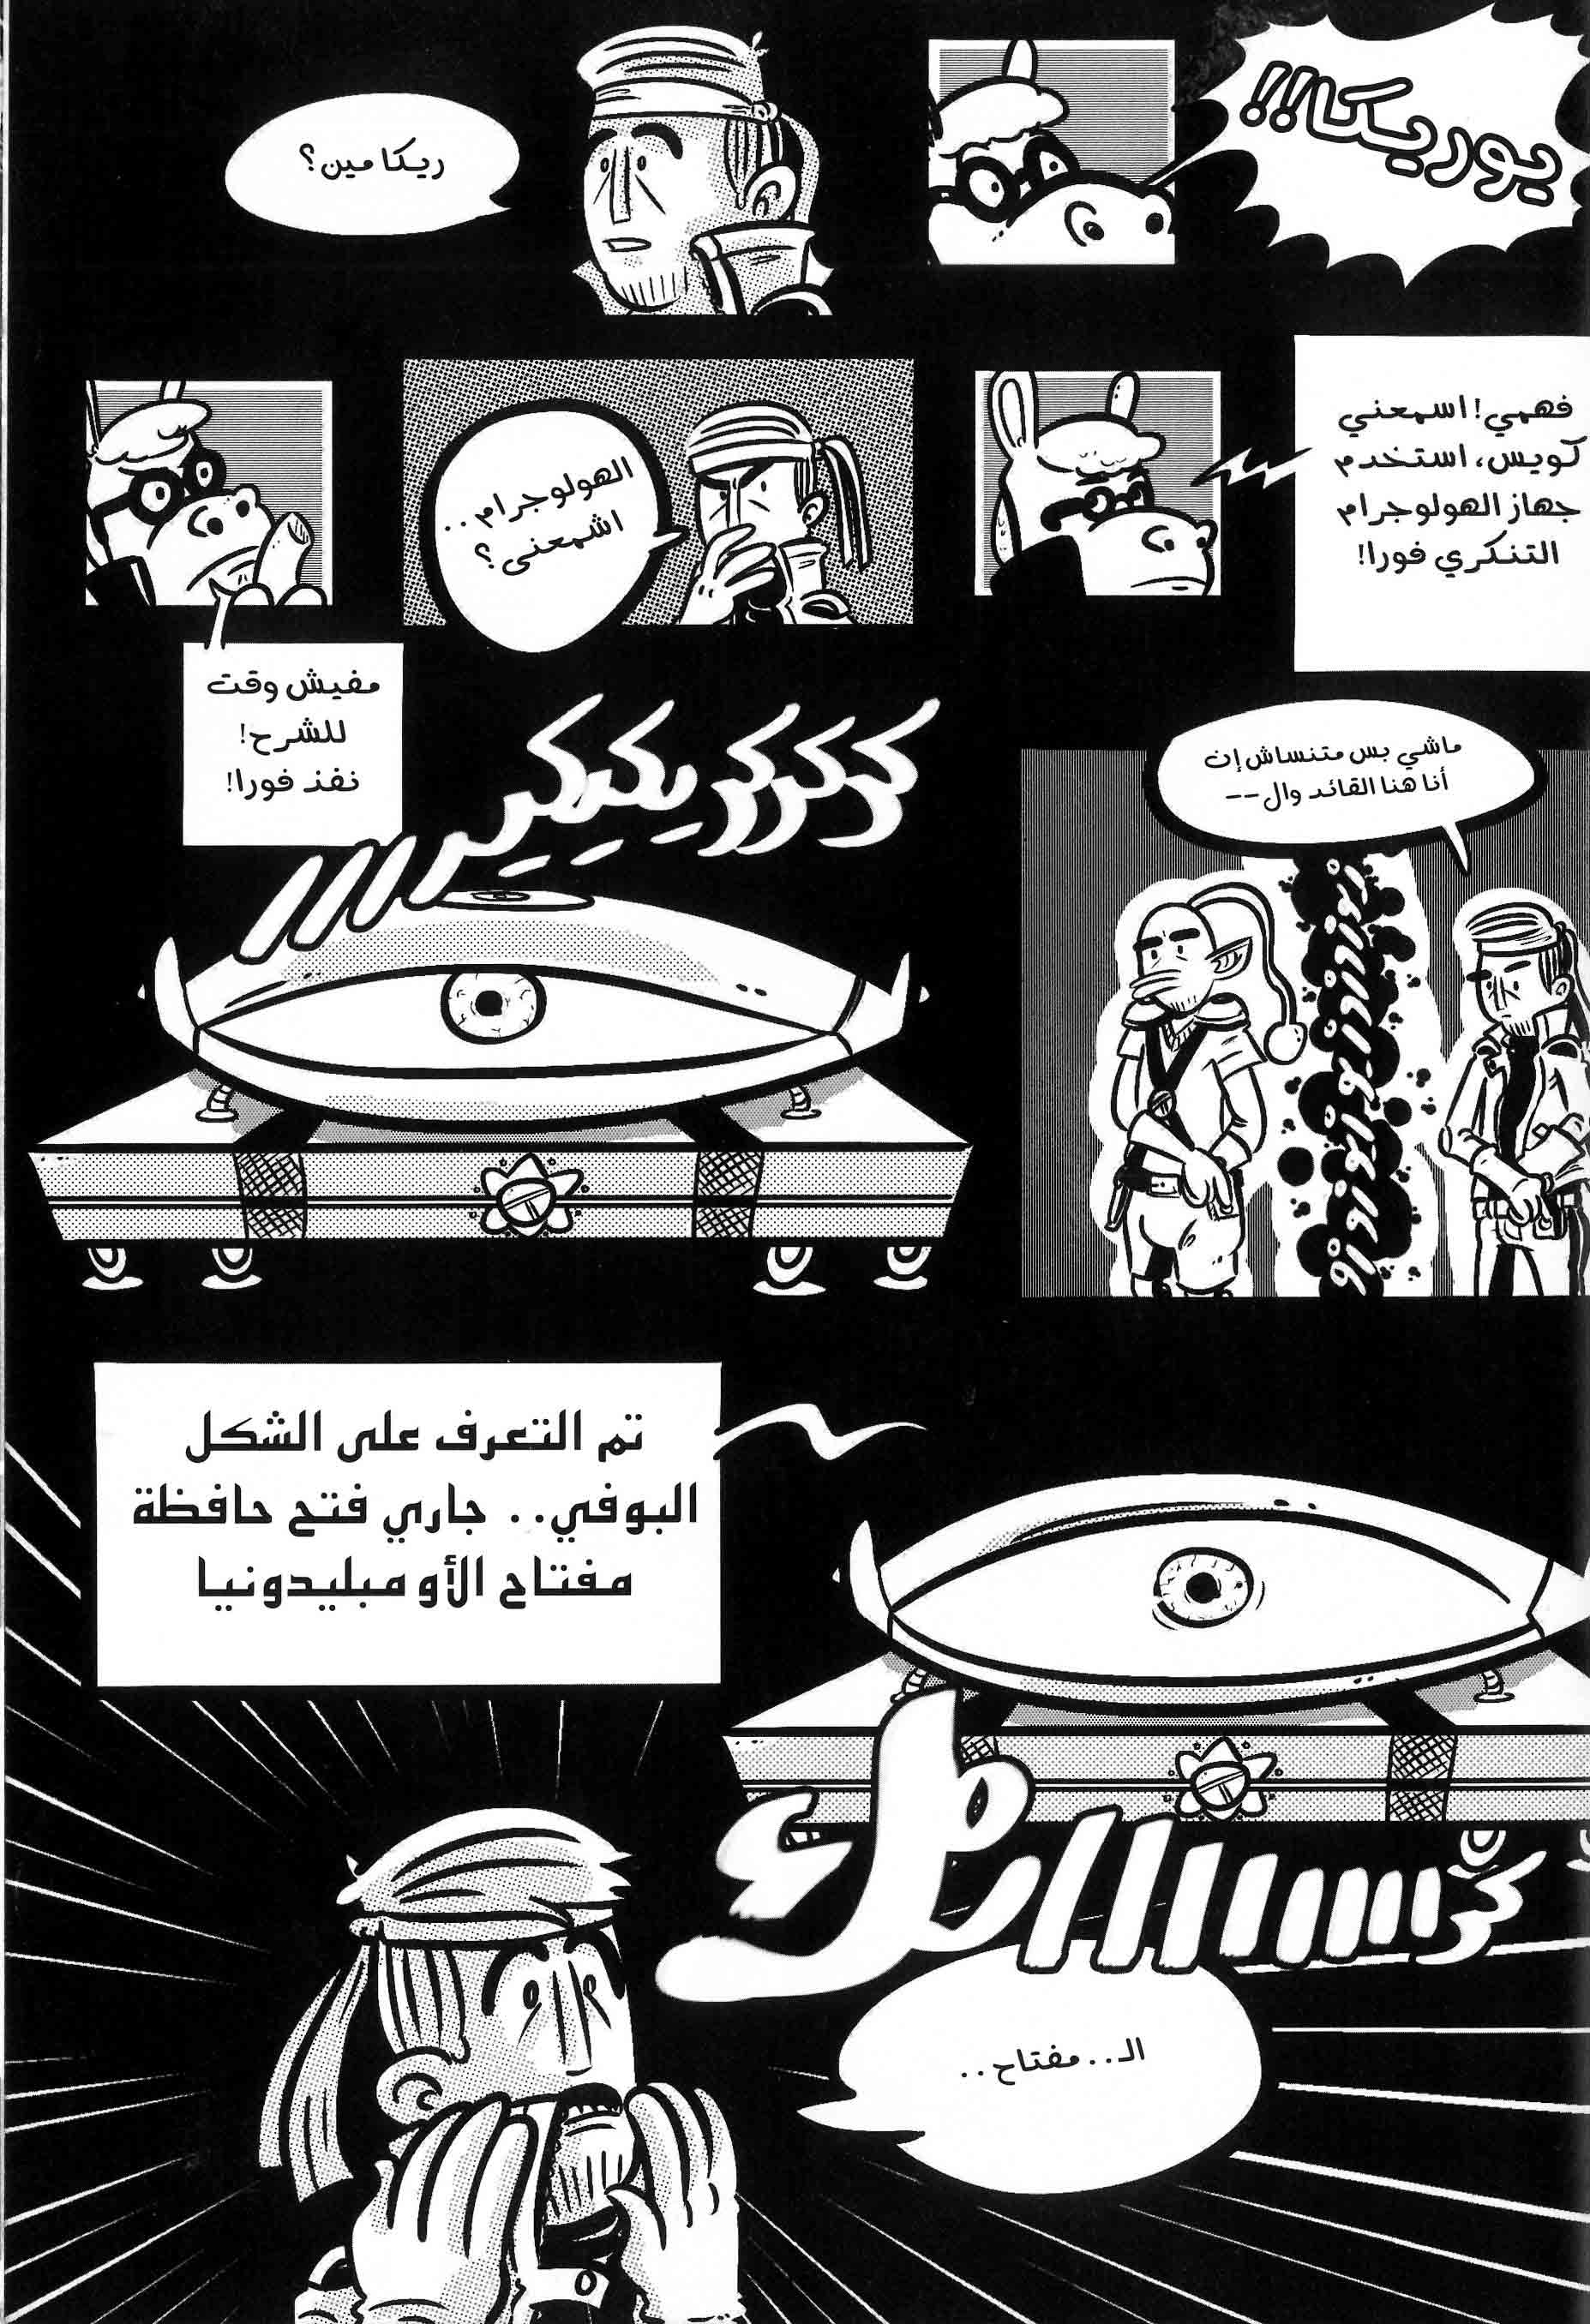 comics_artists_in_the_arab_countries_4.jpg